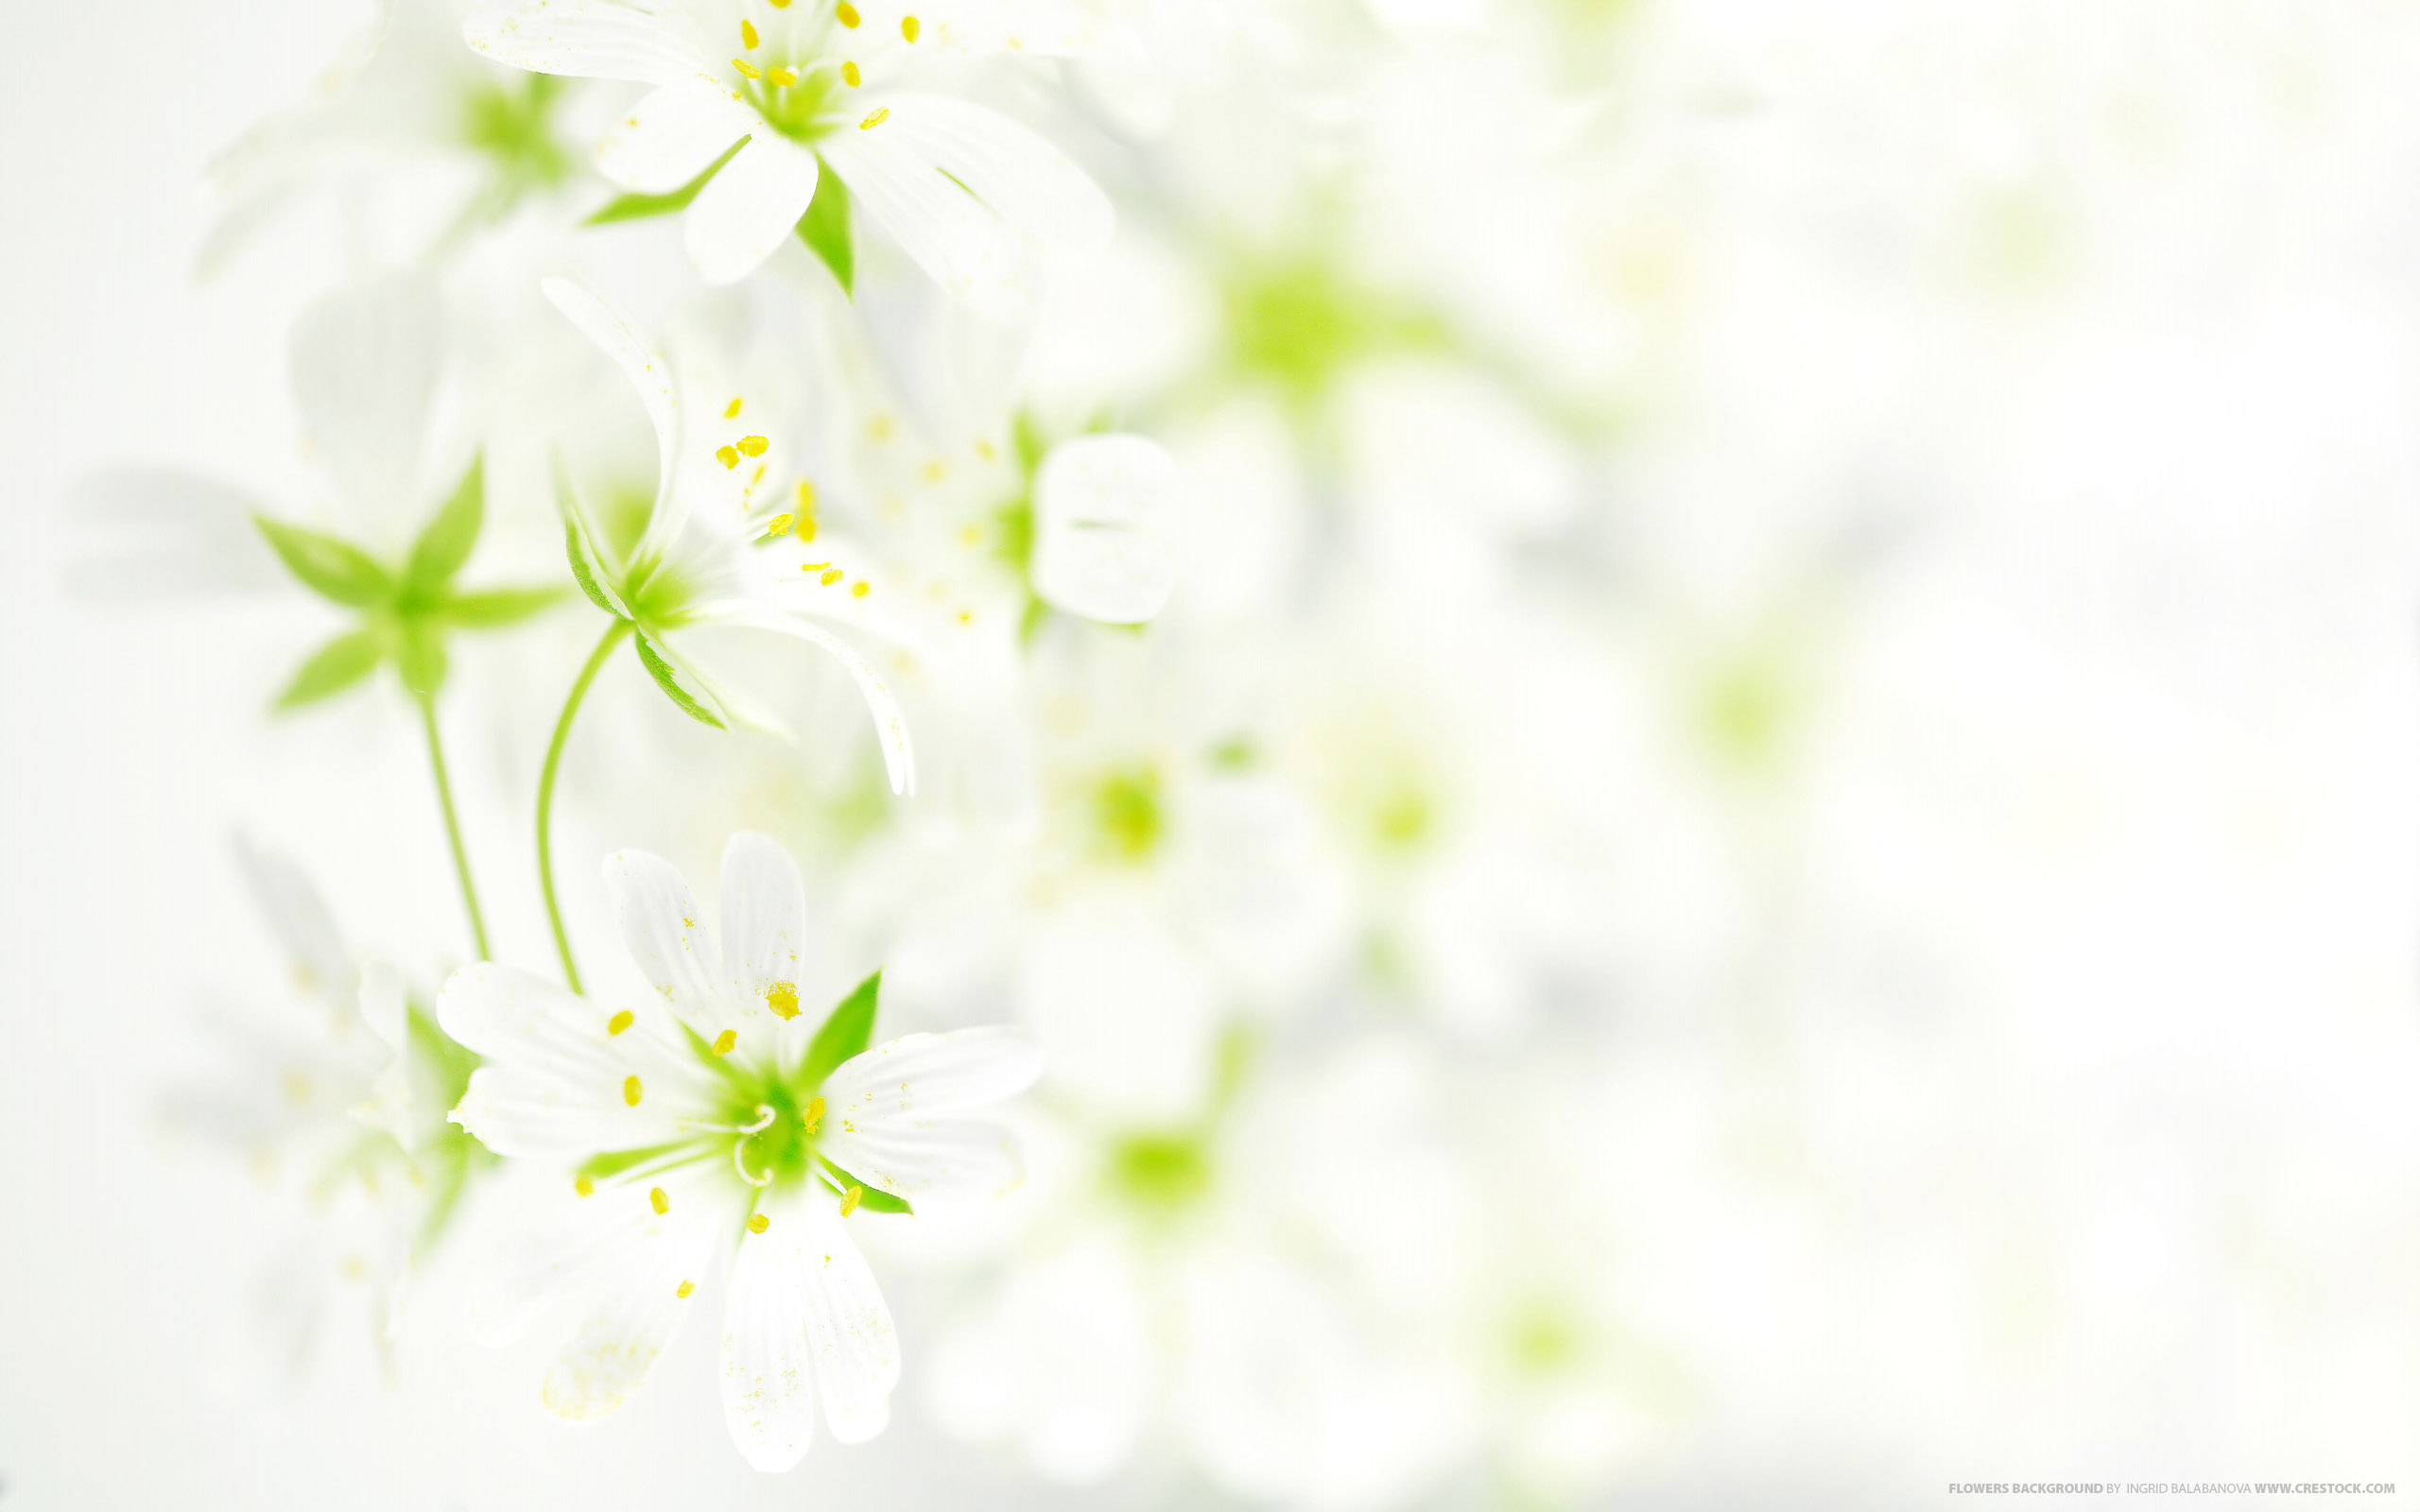 Flowers background wallpaper.